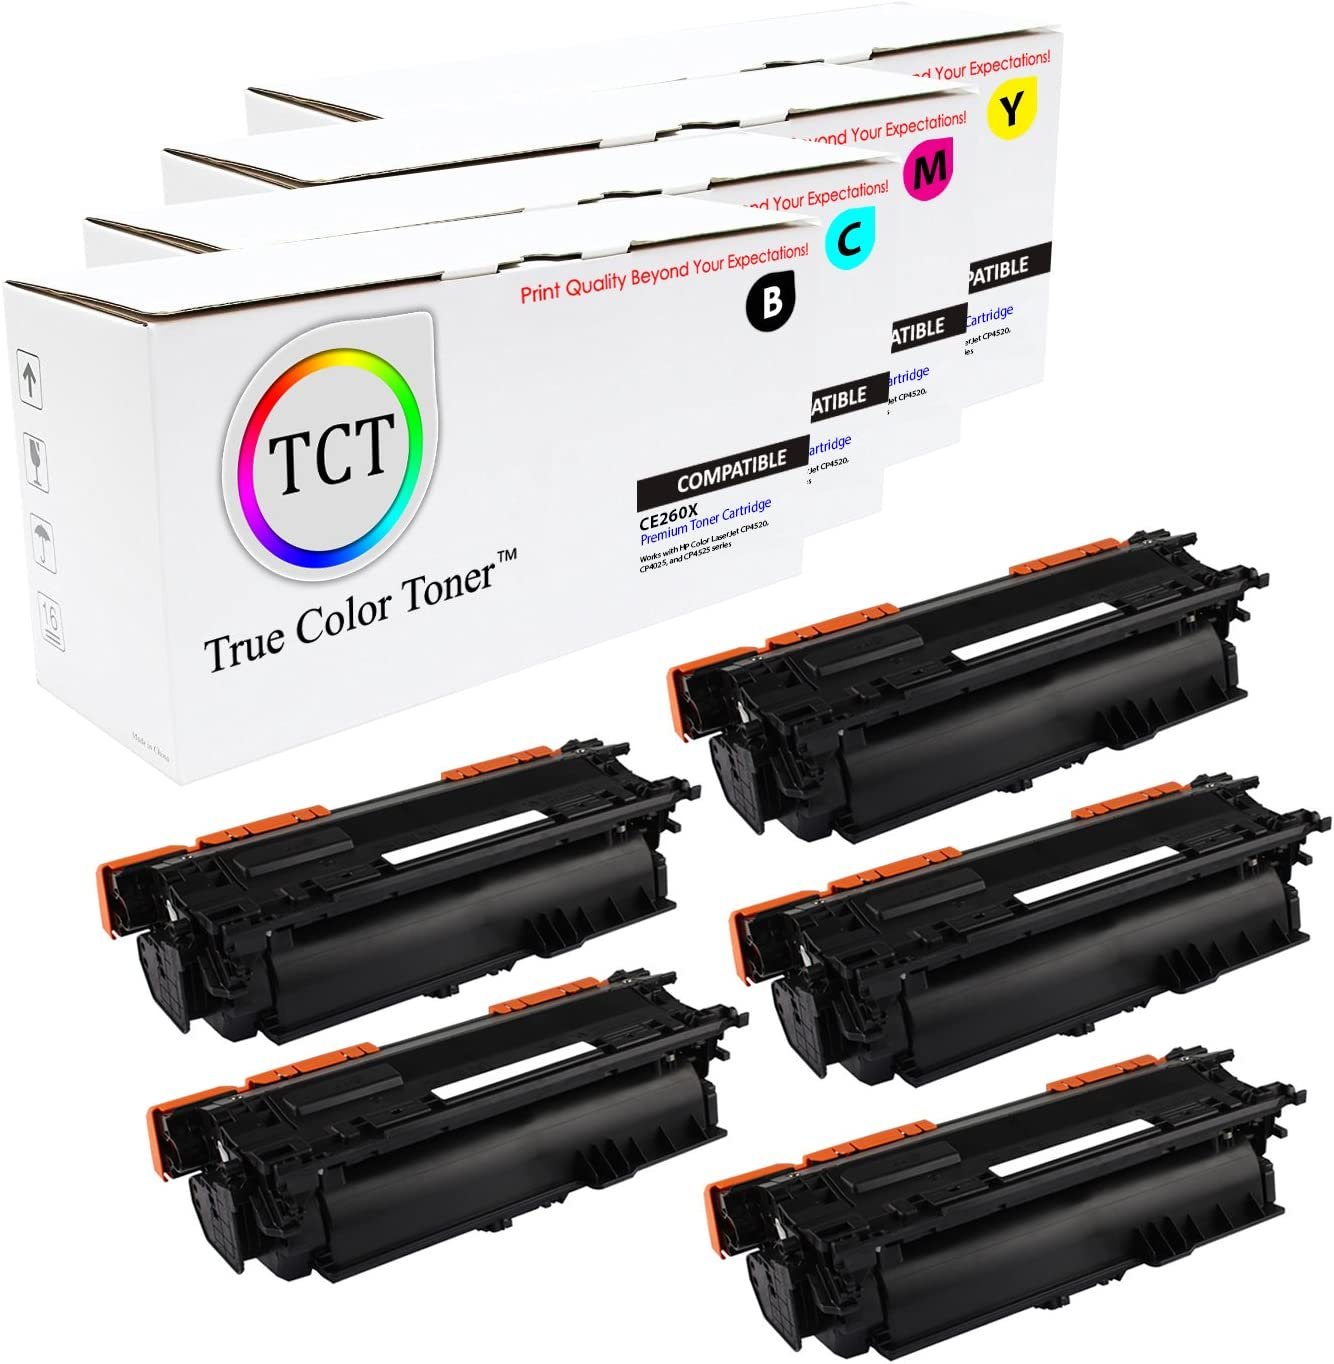 Black, Cyan, Magenta, Yellow 5 Pack TCT Premium Compatible Toner Cartridge Replacement for HP 649X 648A CE260X CE261A CE262A CE263A High Yield Works with HP Color Laserjet CP4520 CP4025 Printers